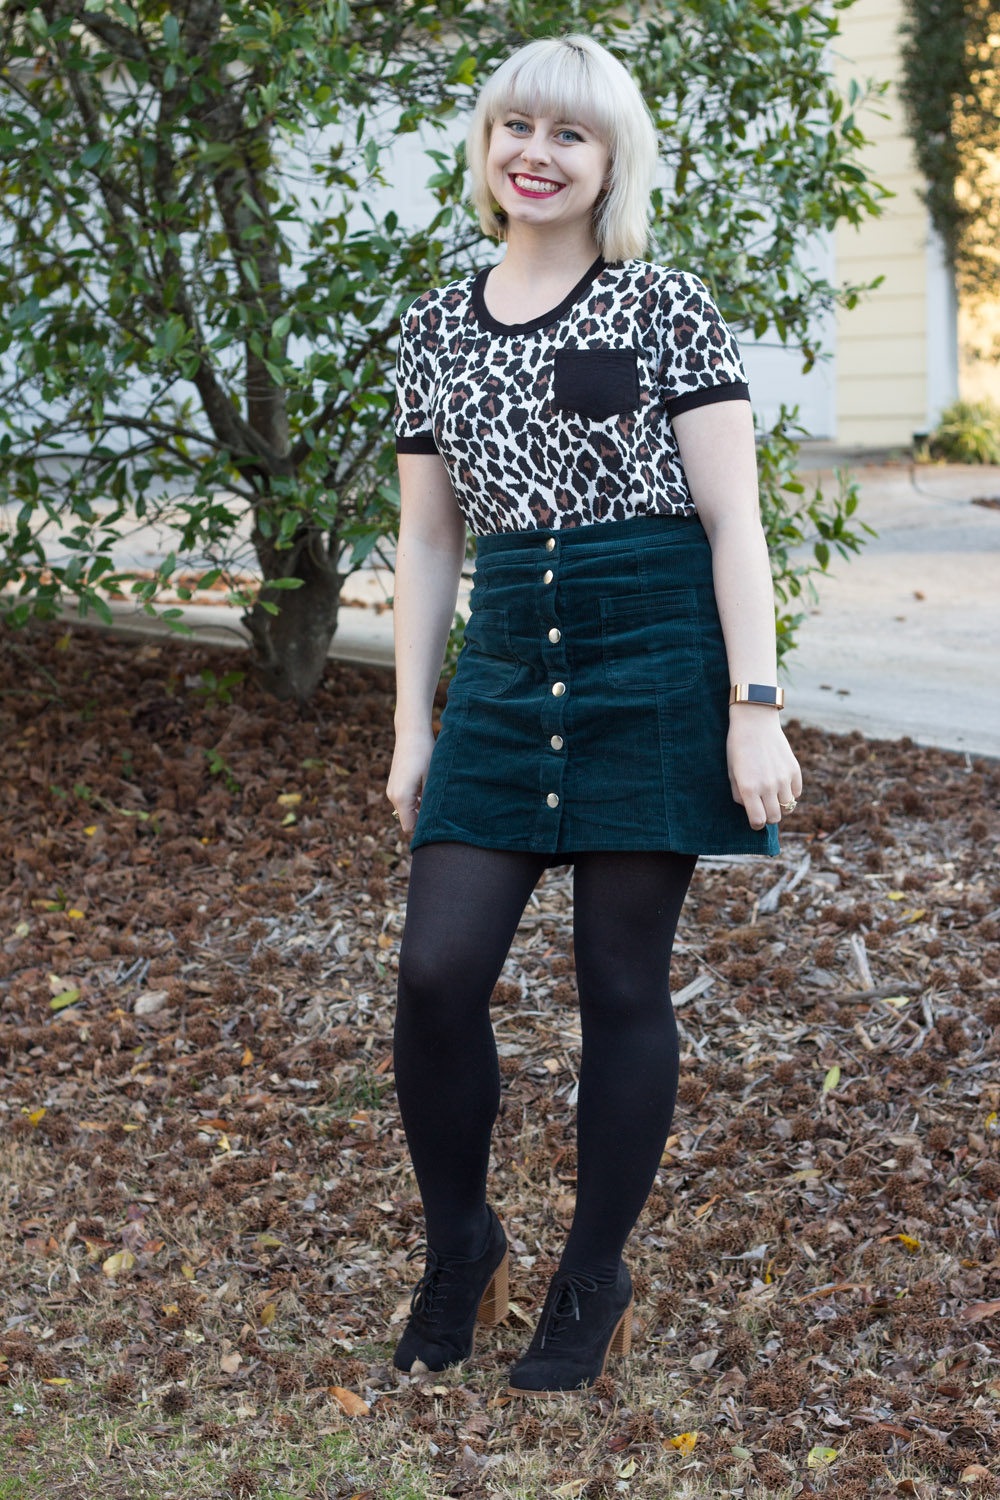 Green Corduroy Button Down Skirt, Leopard Print T-shirt, Black Tights, Black Lace Up Boots